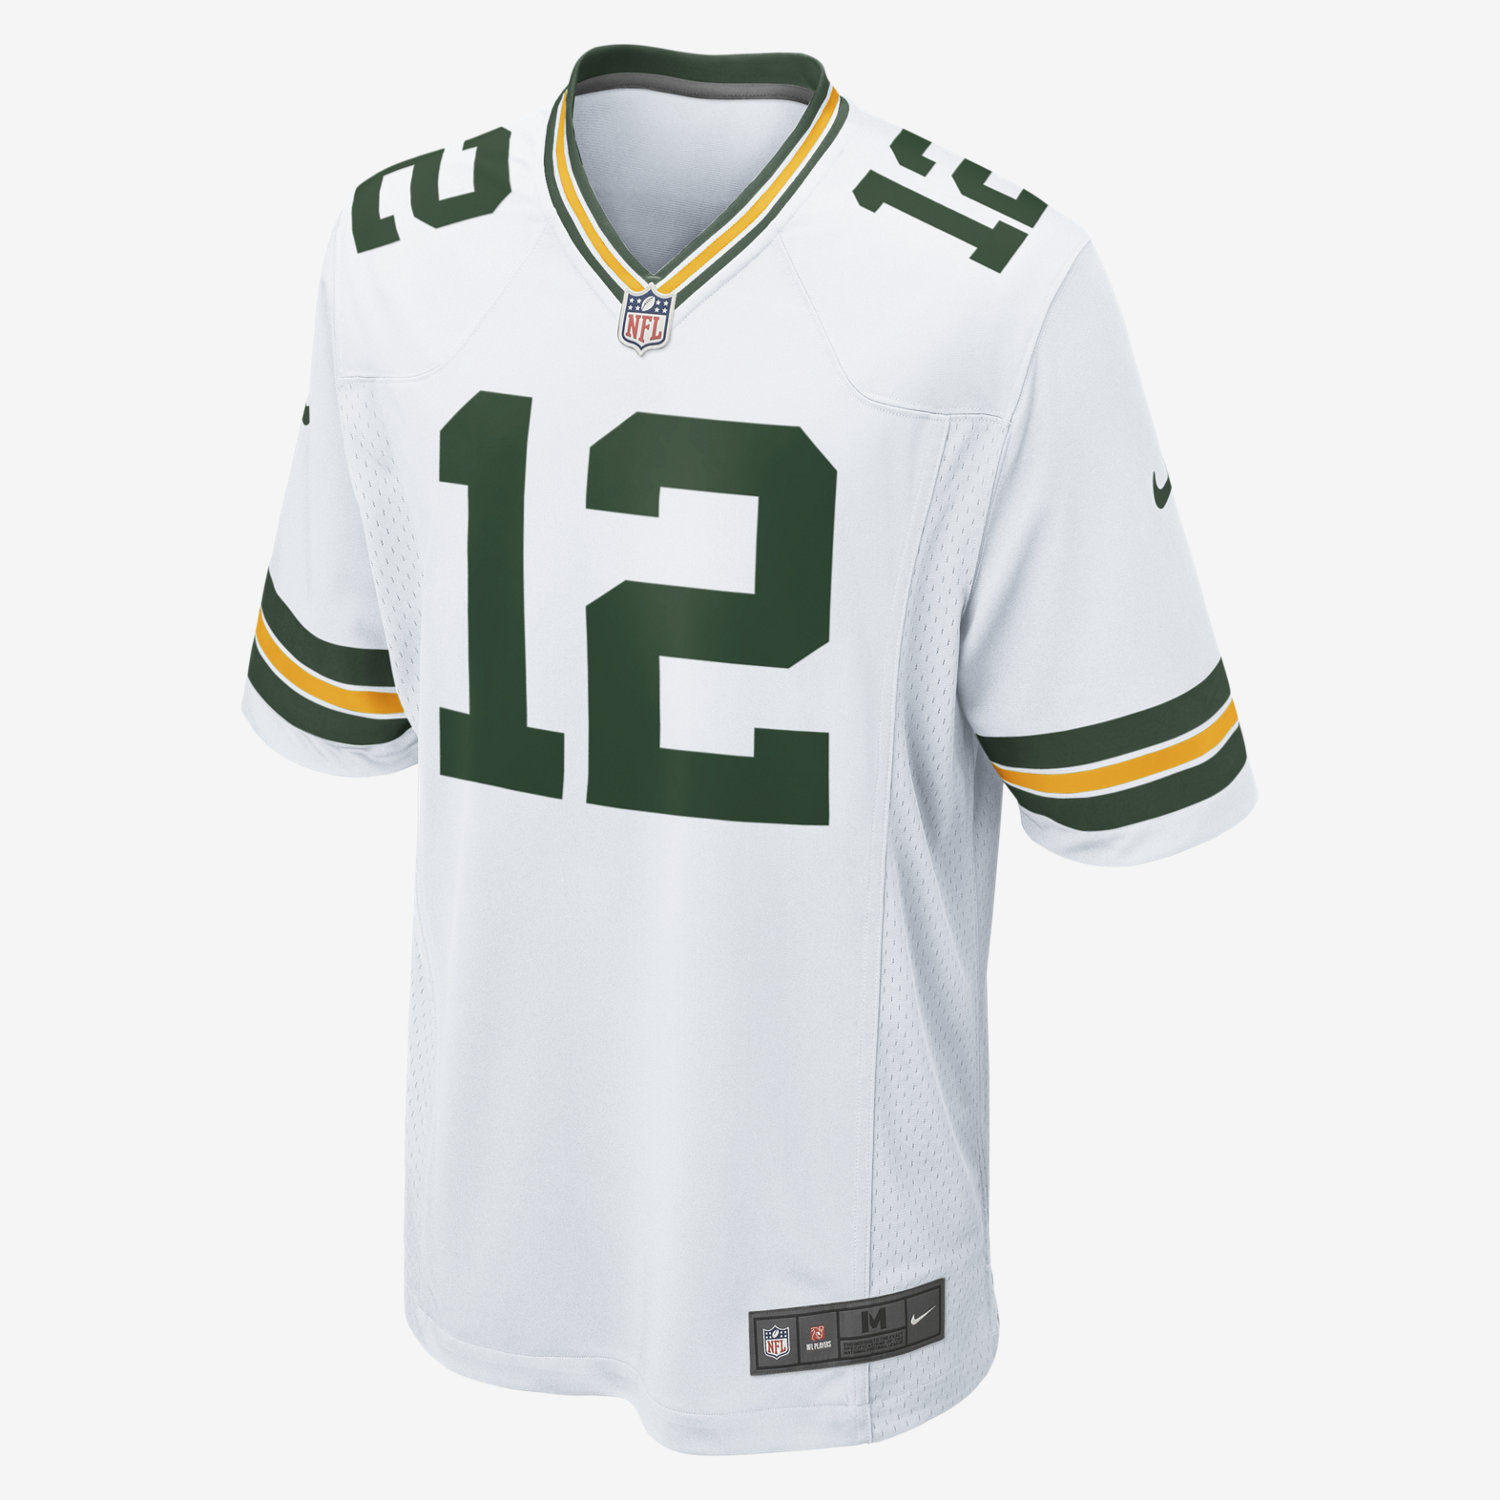 9e7f7bd4 ... NFL Green Bay Packers (Aaron Rodgers) Mens Football Away Game Jersey.  Nike. 12 Nike Game Jim Kelly ...